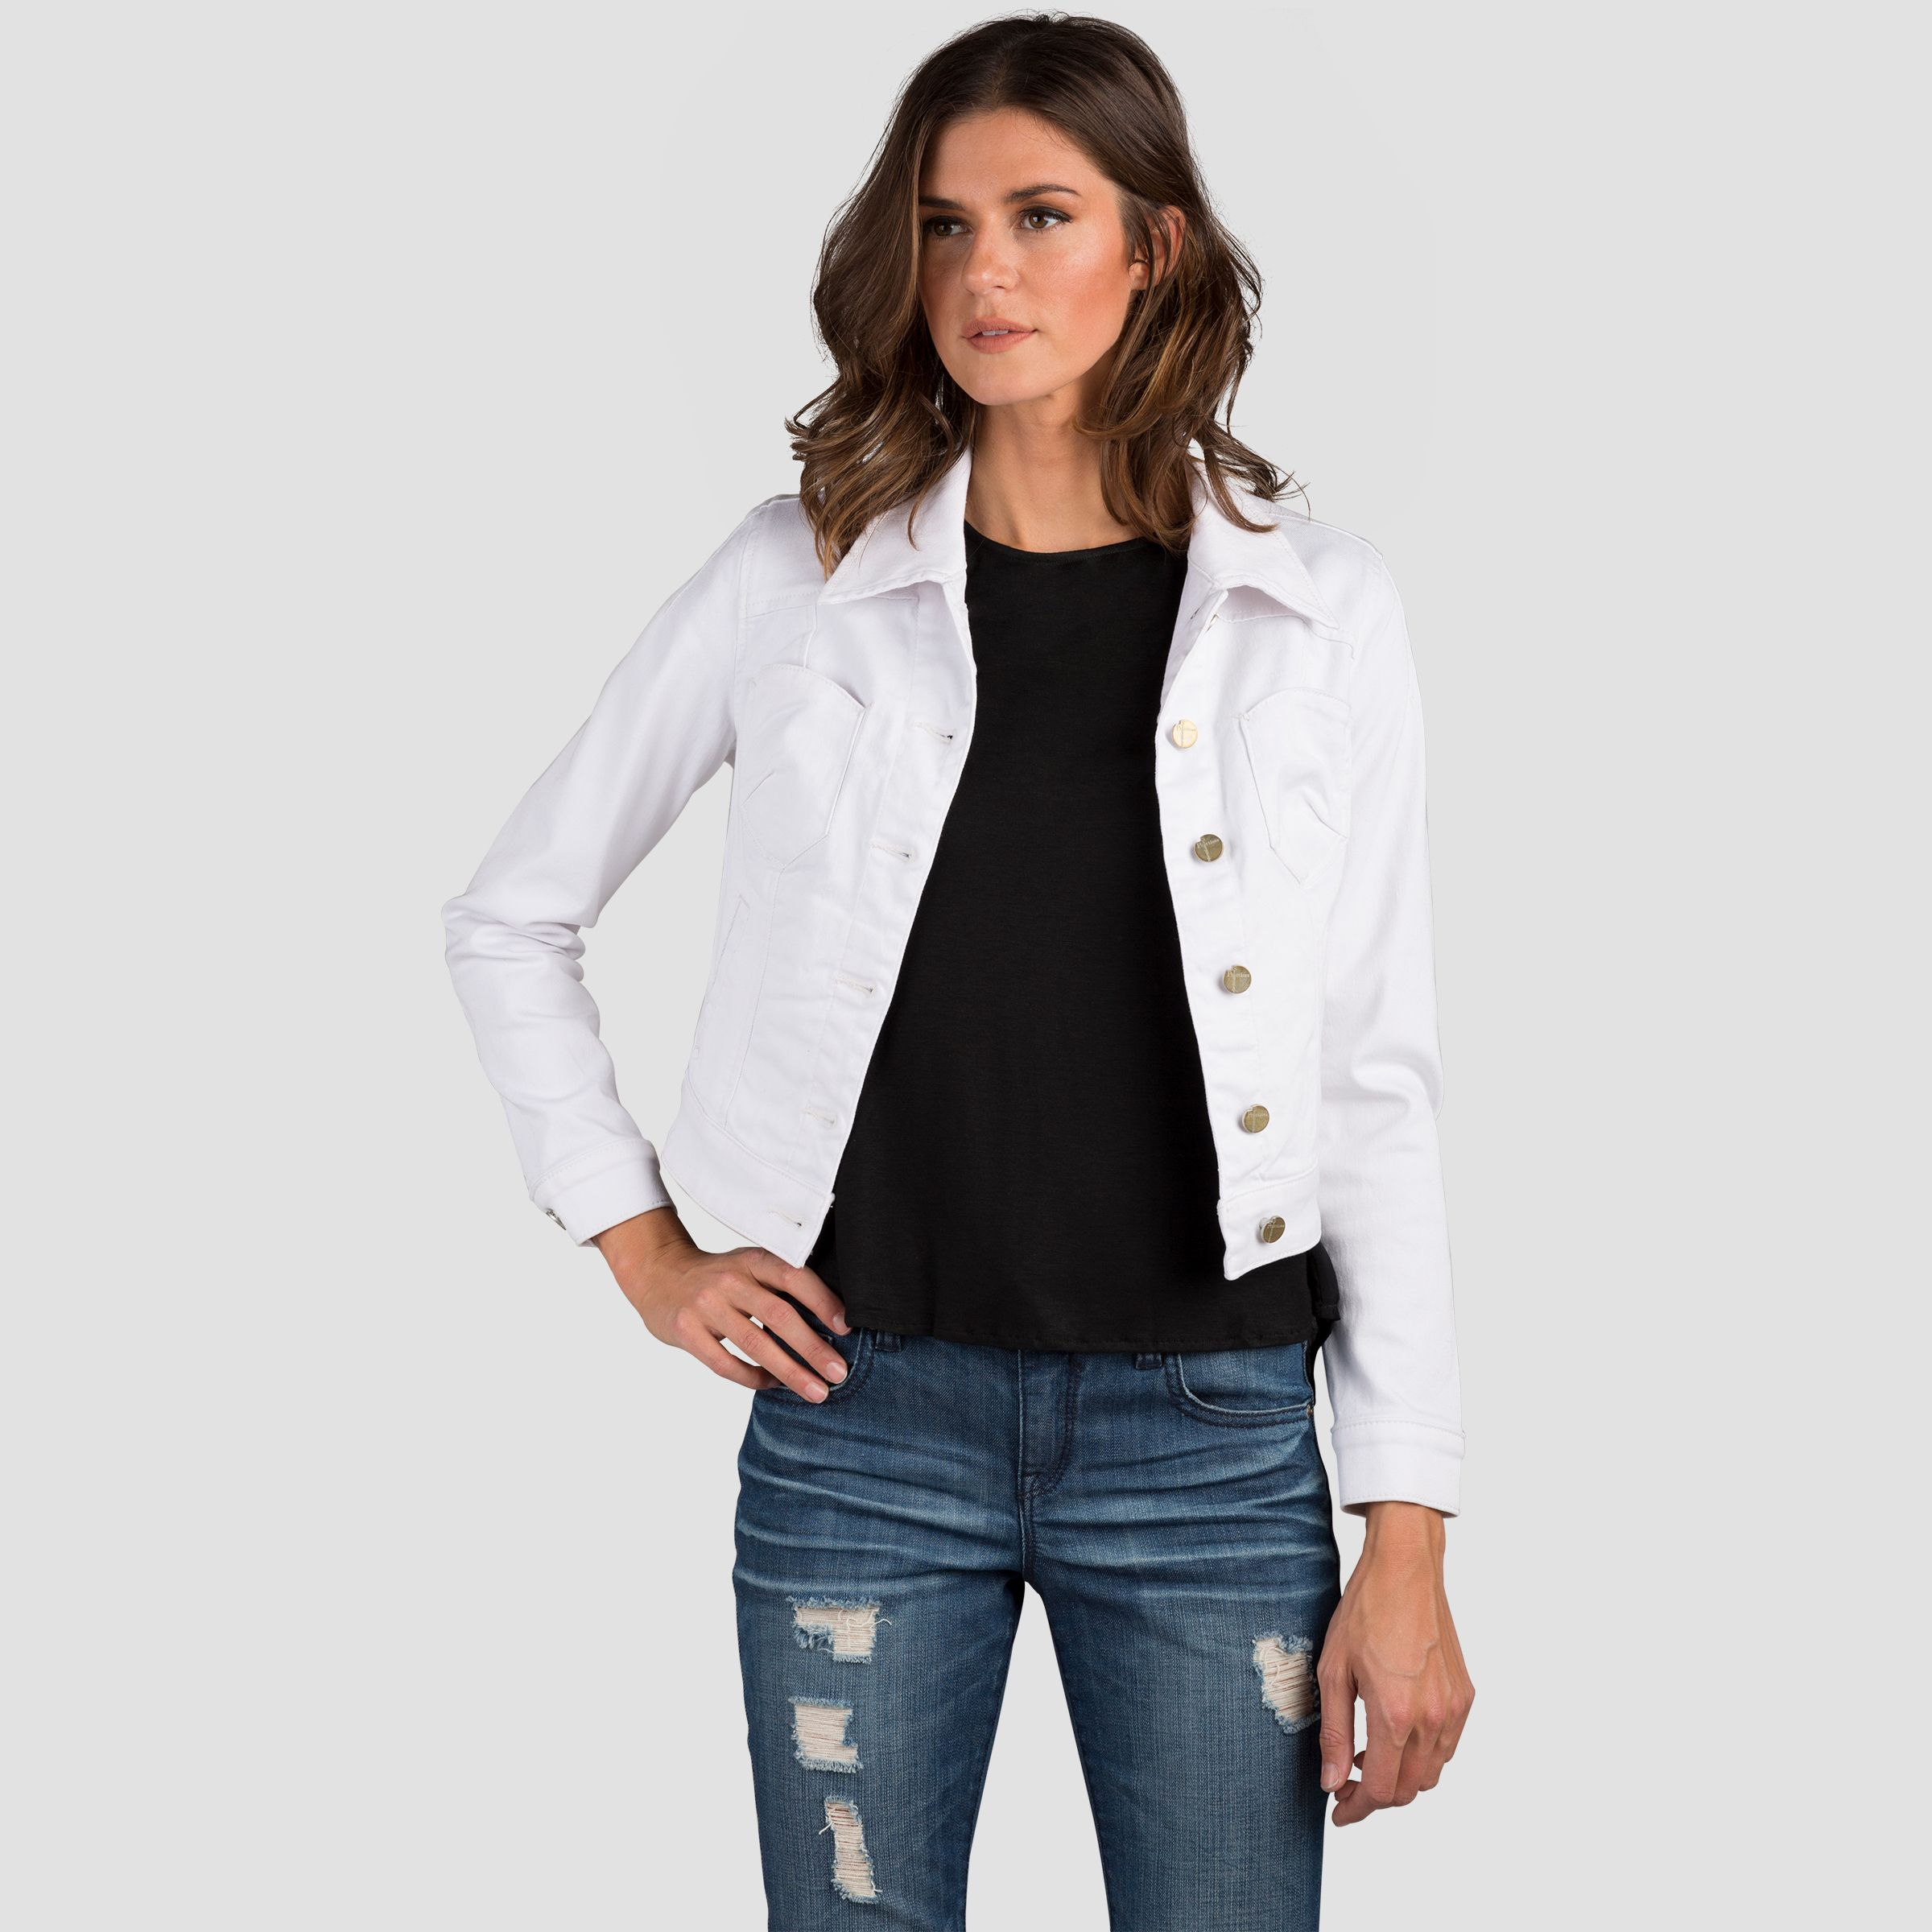 Ready To Ride In Our Vespa Optic White Cropped Denim Jacket White Cropped Jacket Cropped White Jeans Denim Jacket Women [ 2400 x 2400 Pixel ]